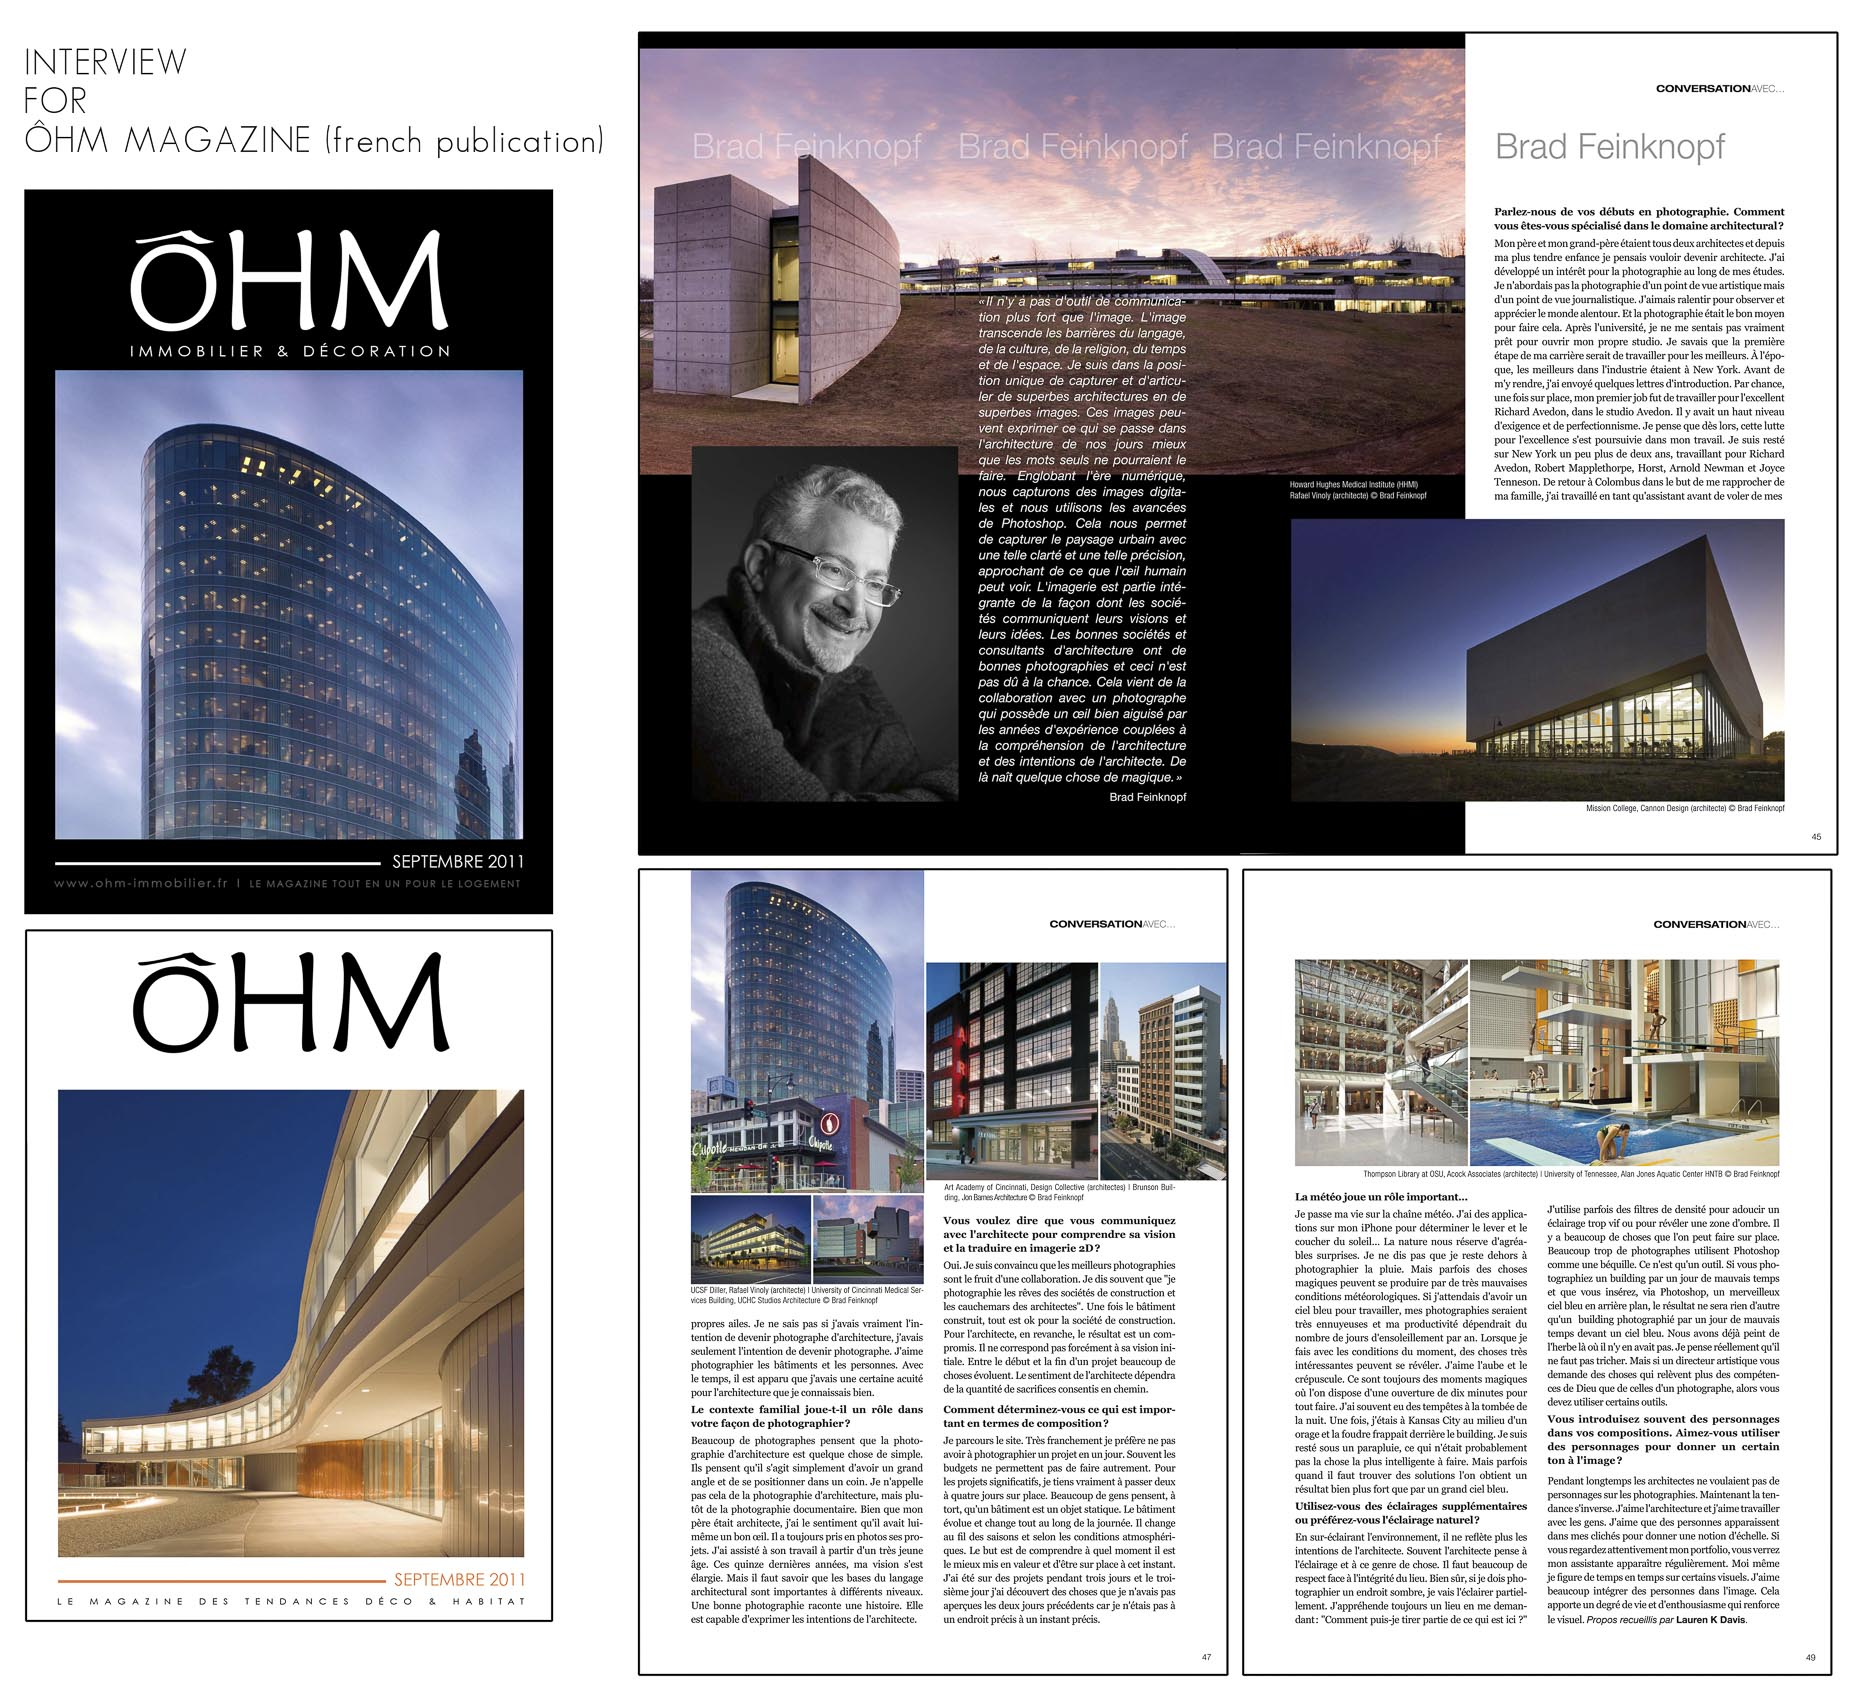 OHM September 2011 Issue with Brad Feinknopf Interview